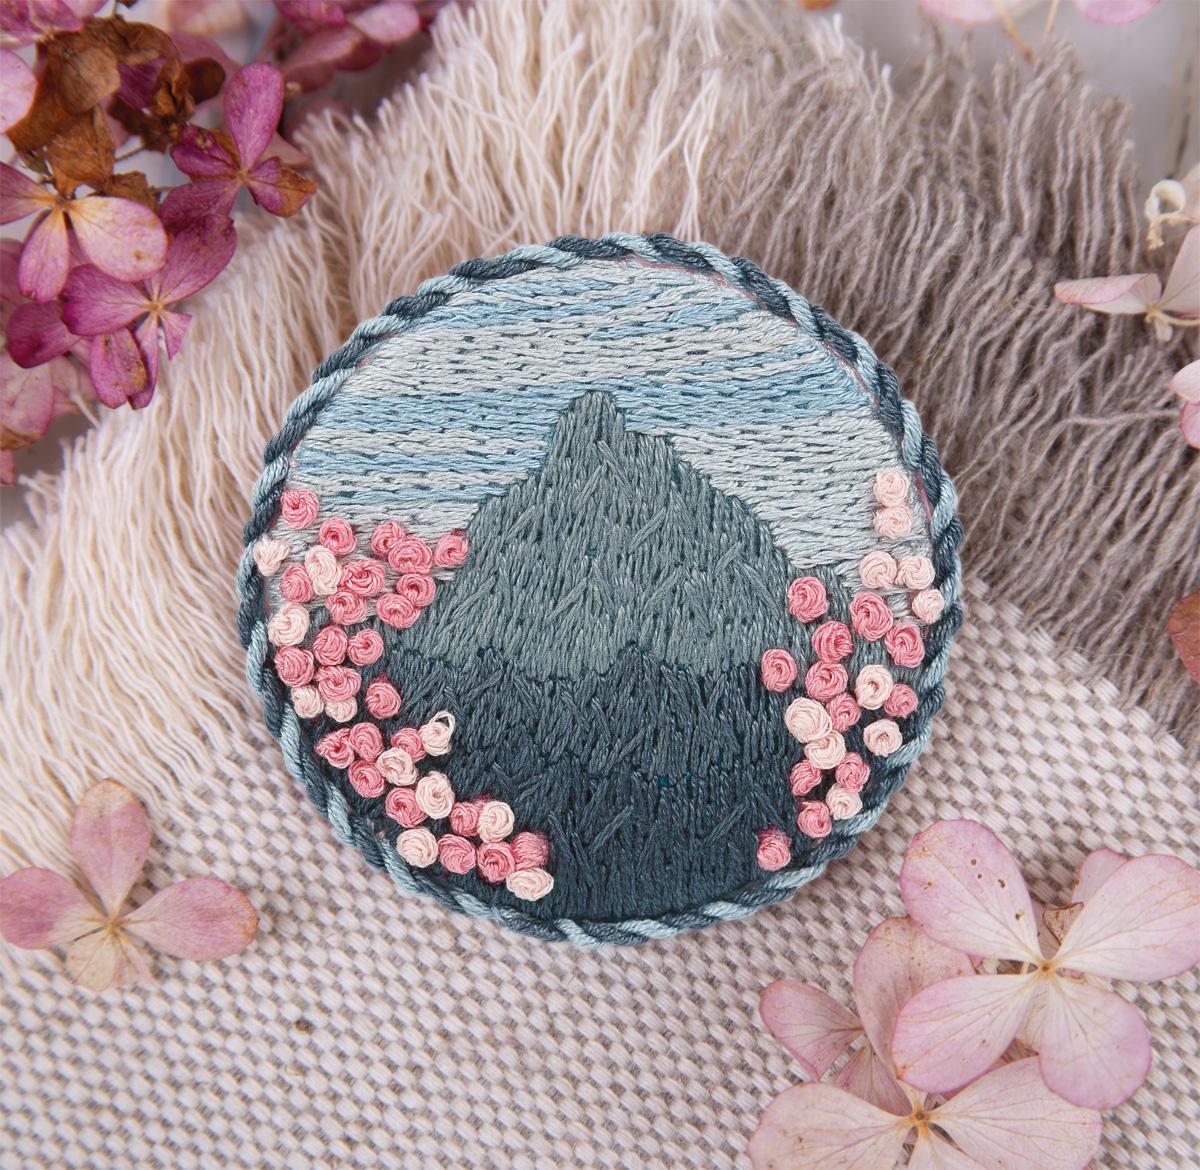 Embroidery kits PANNA Living Picture JK-2142 Brooch. Mountain sakura